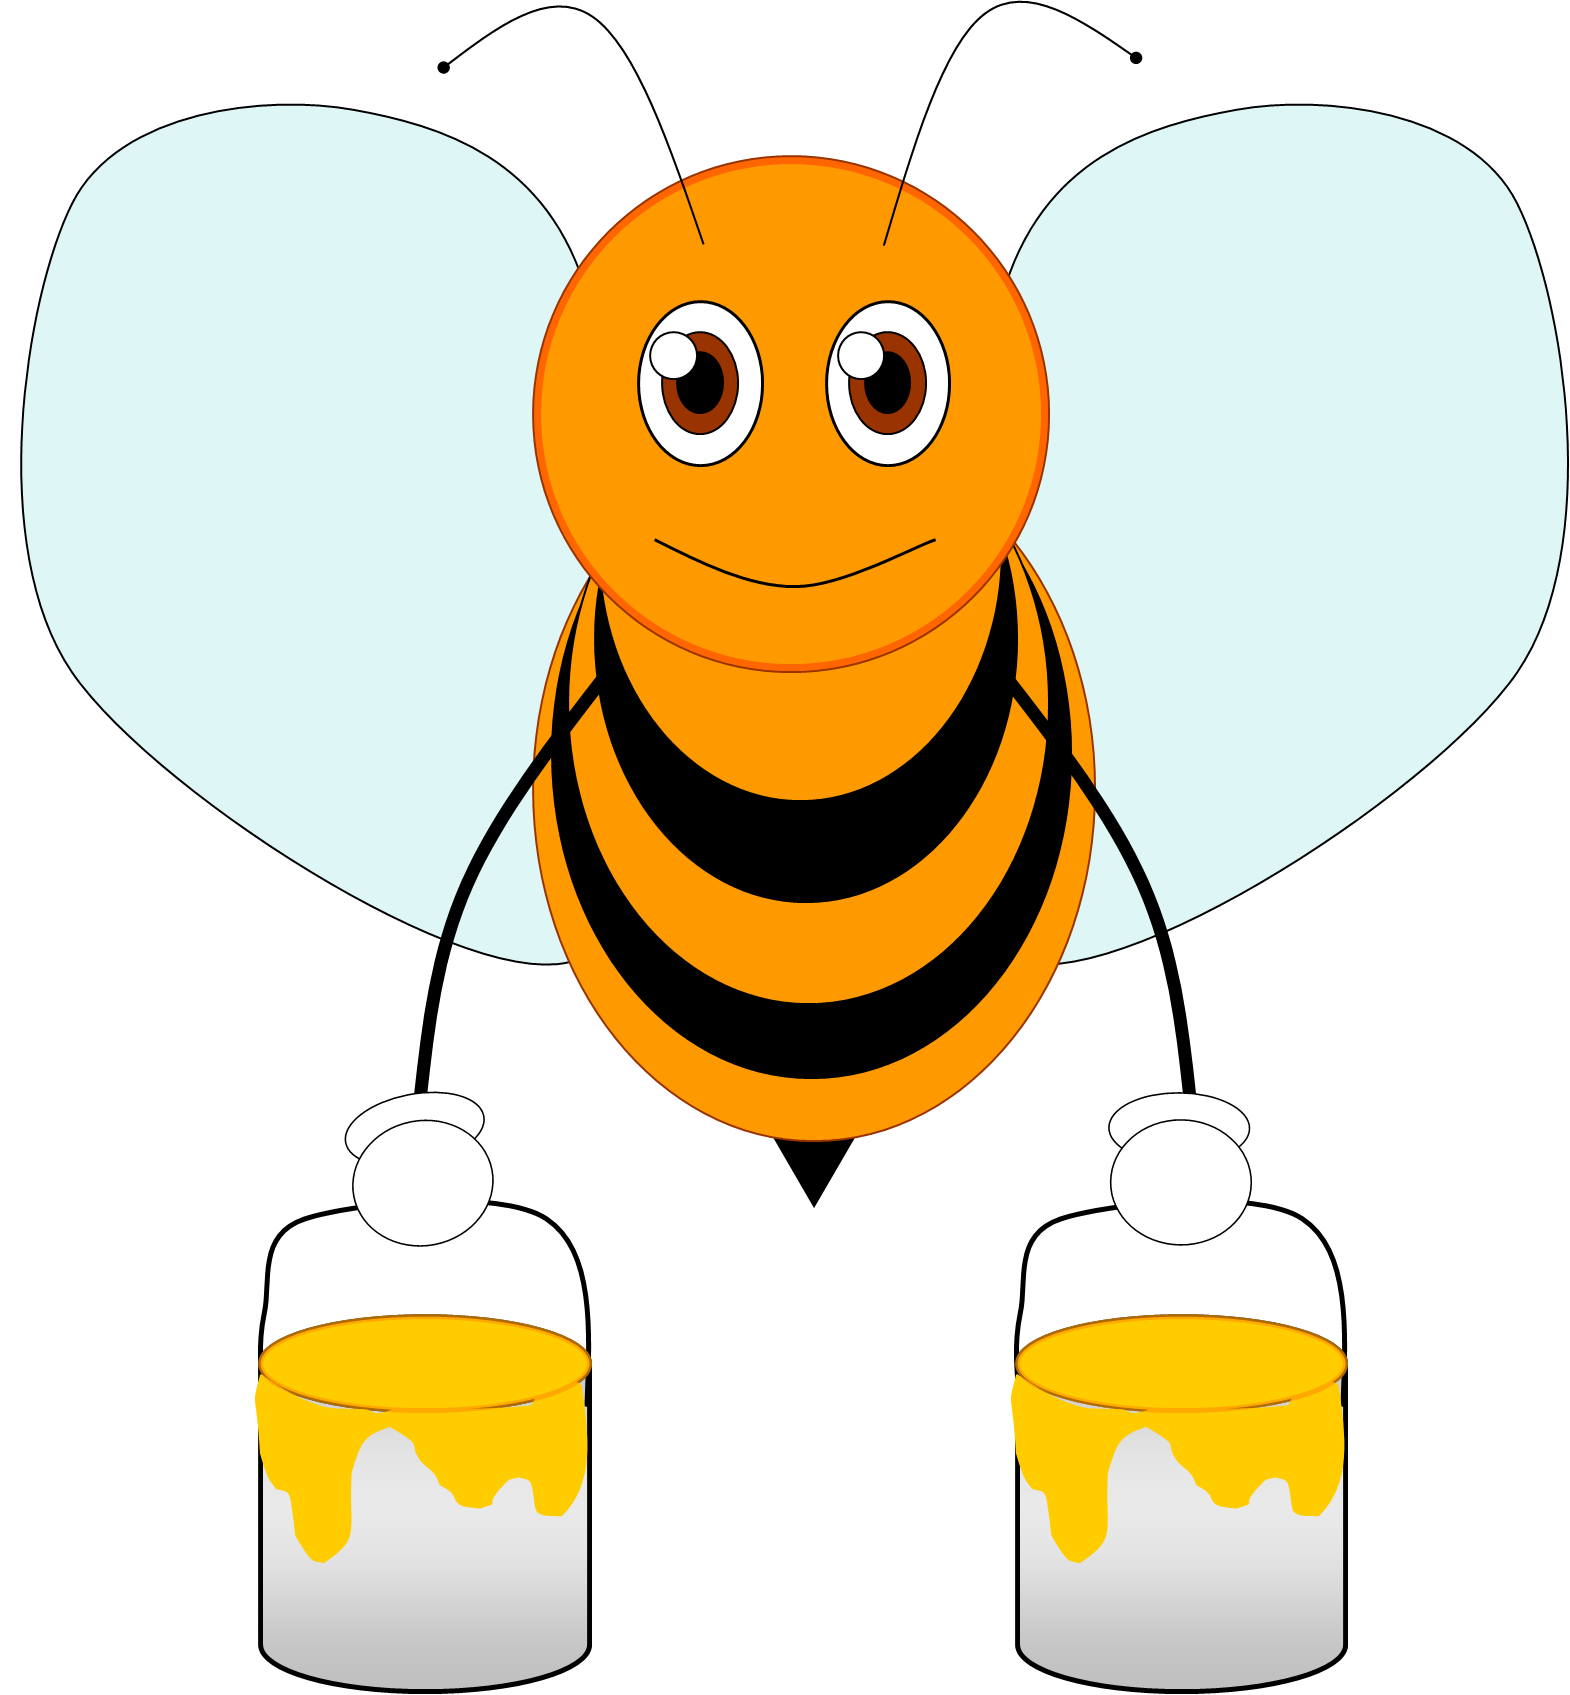 bees animated clipart best motion clip arts for powerpoint motion clip art free